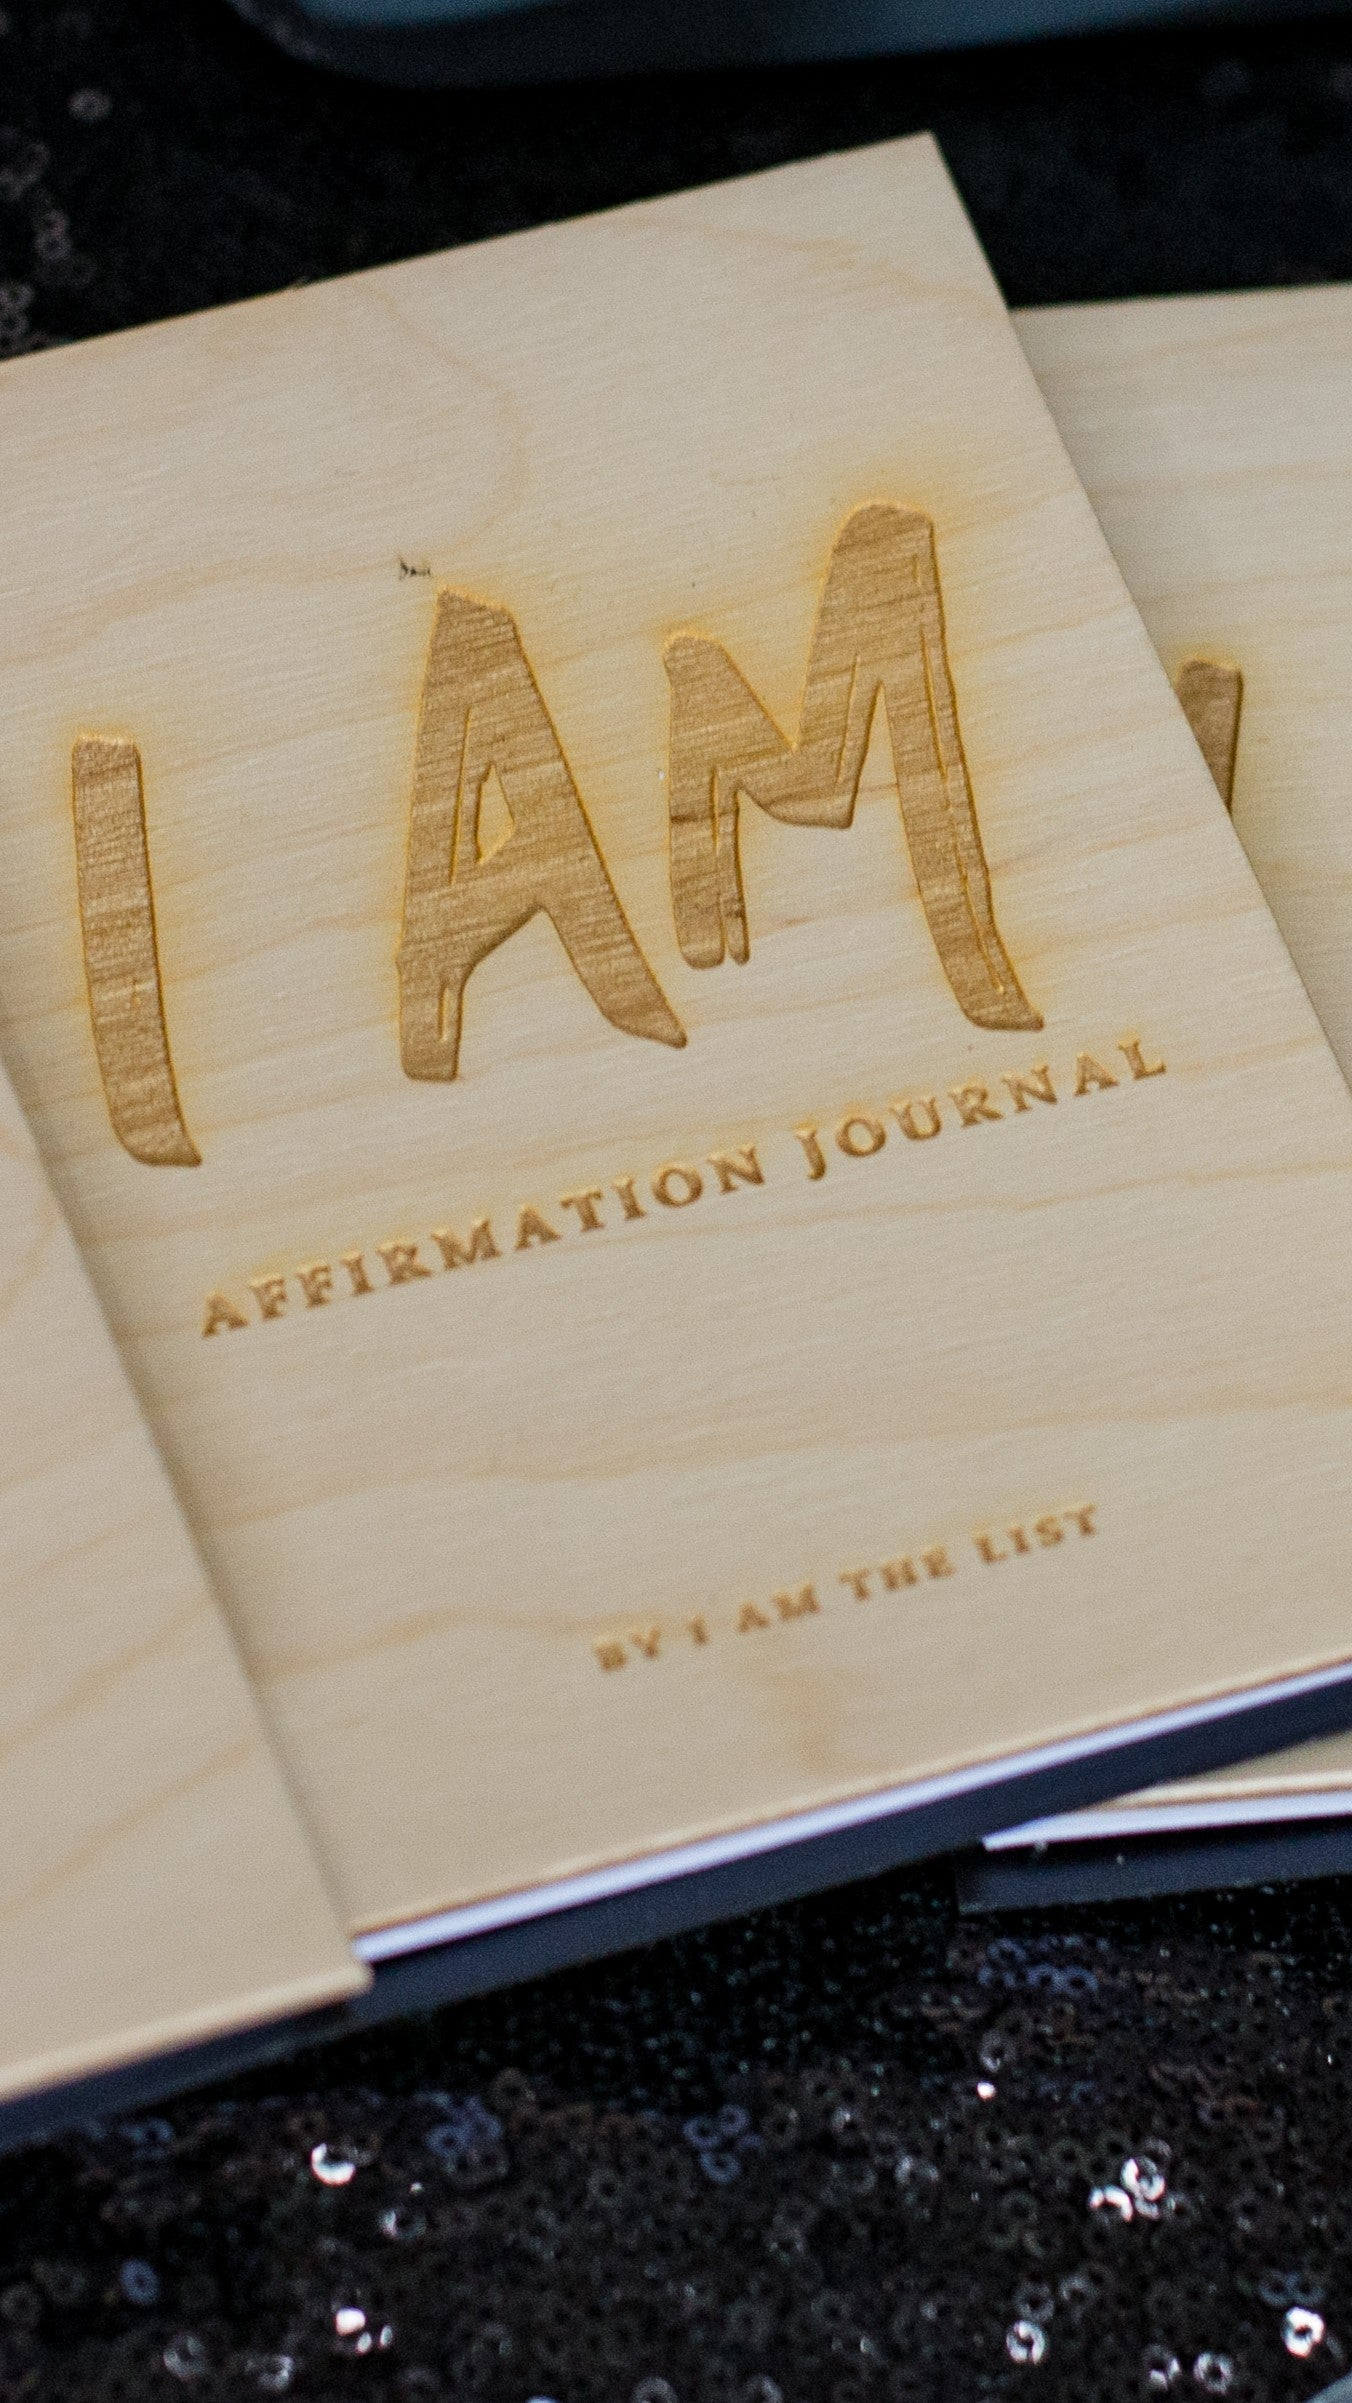 I Am Affirmation Journal